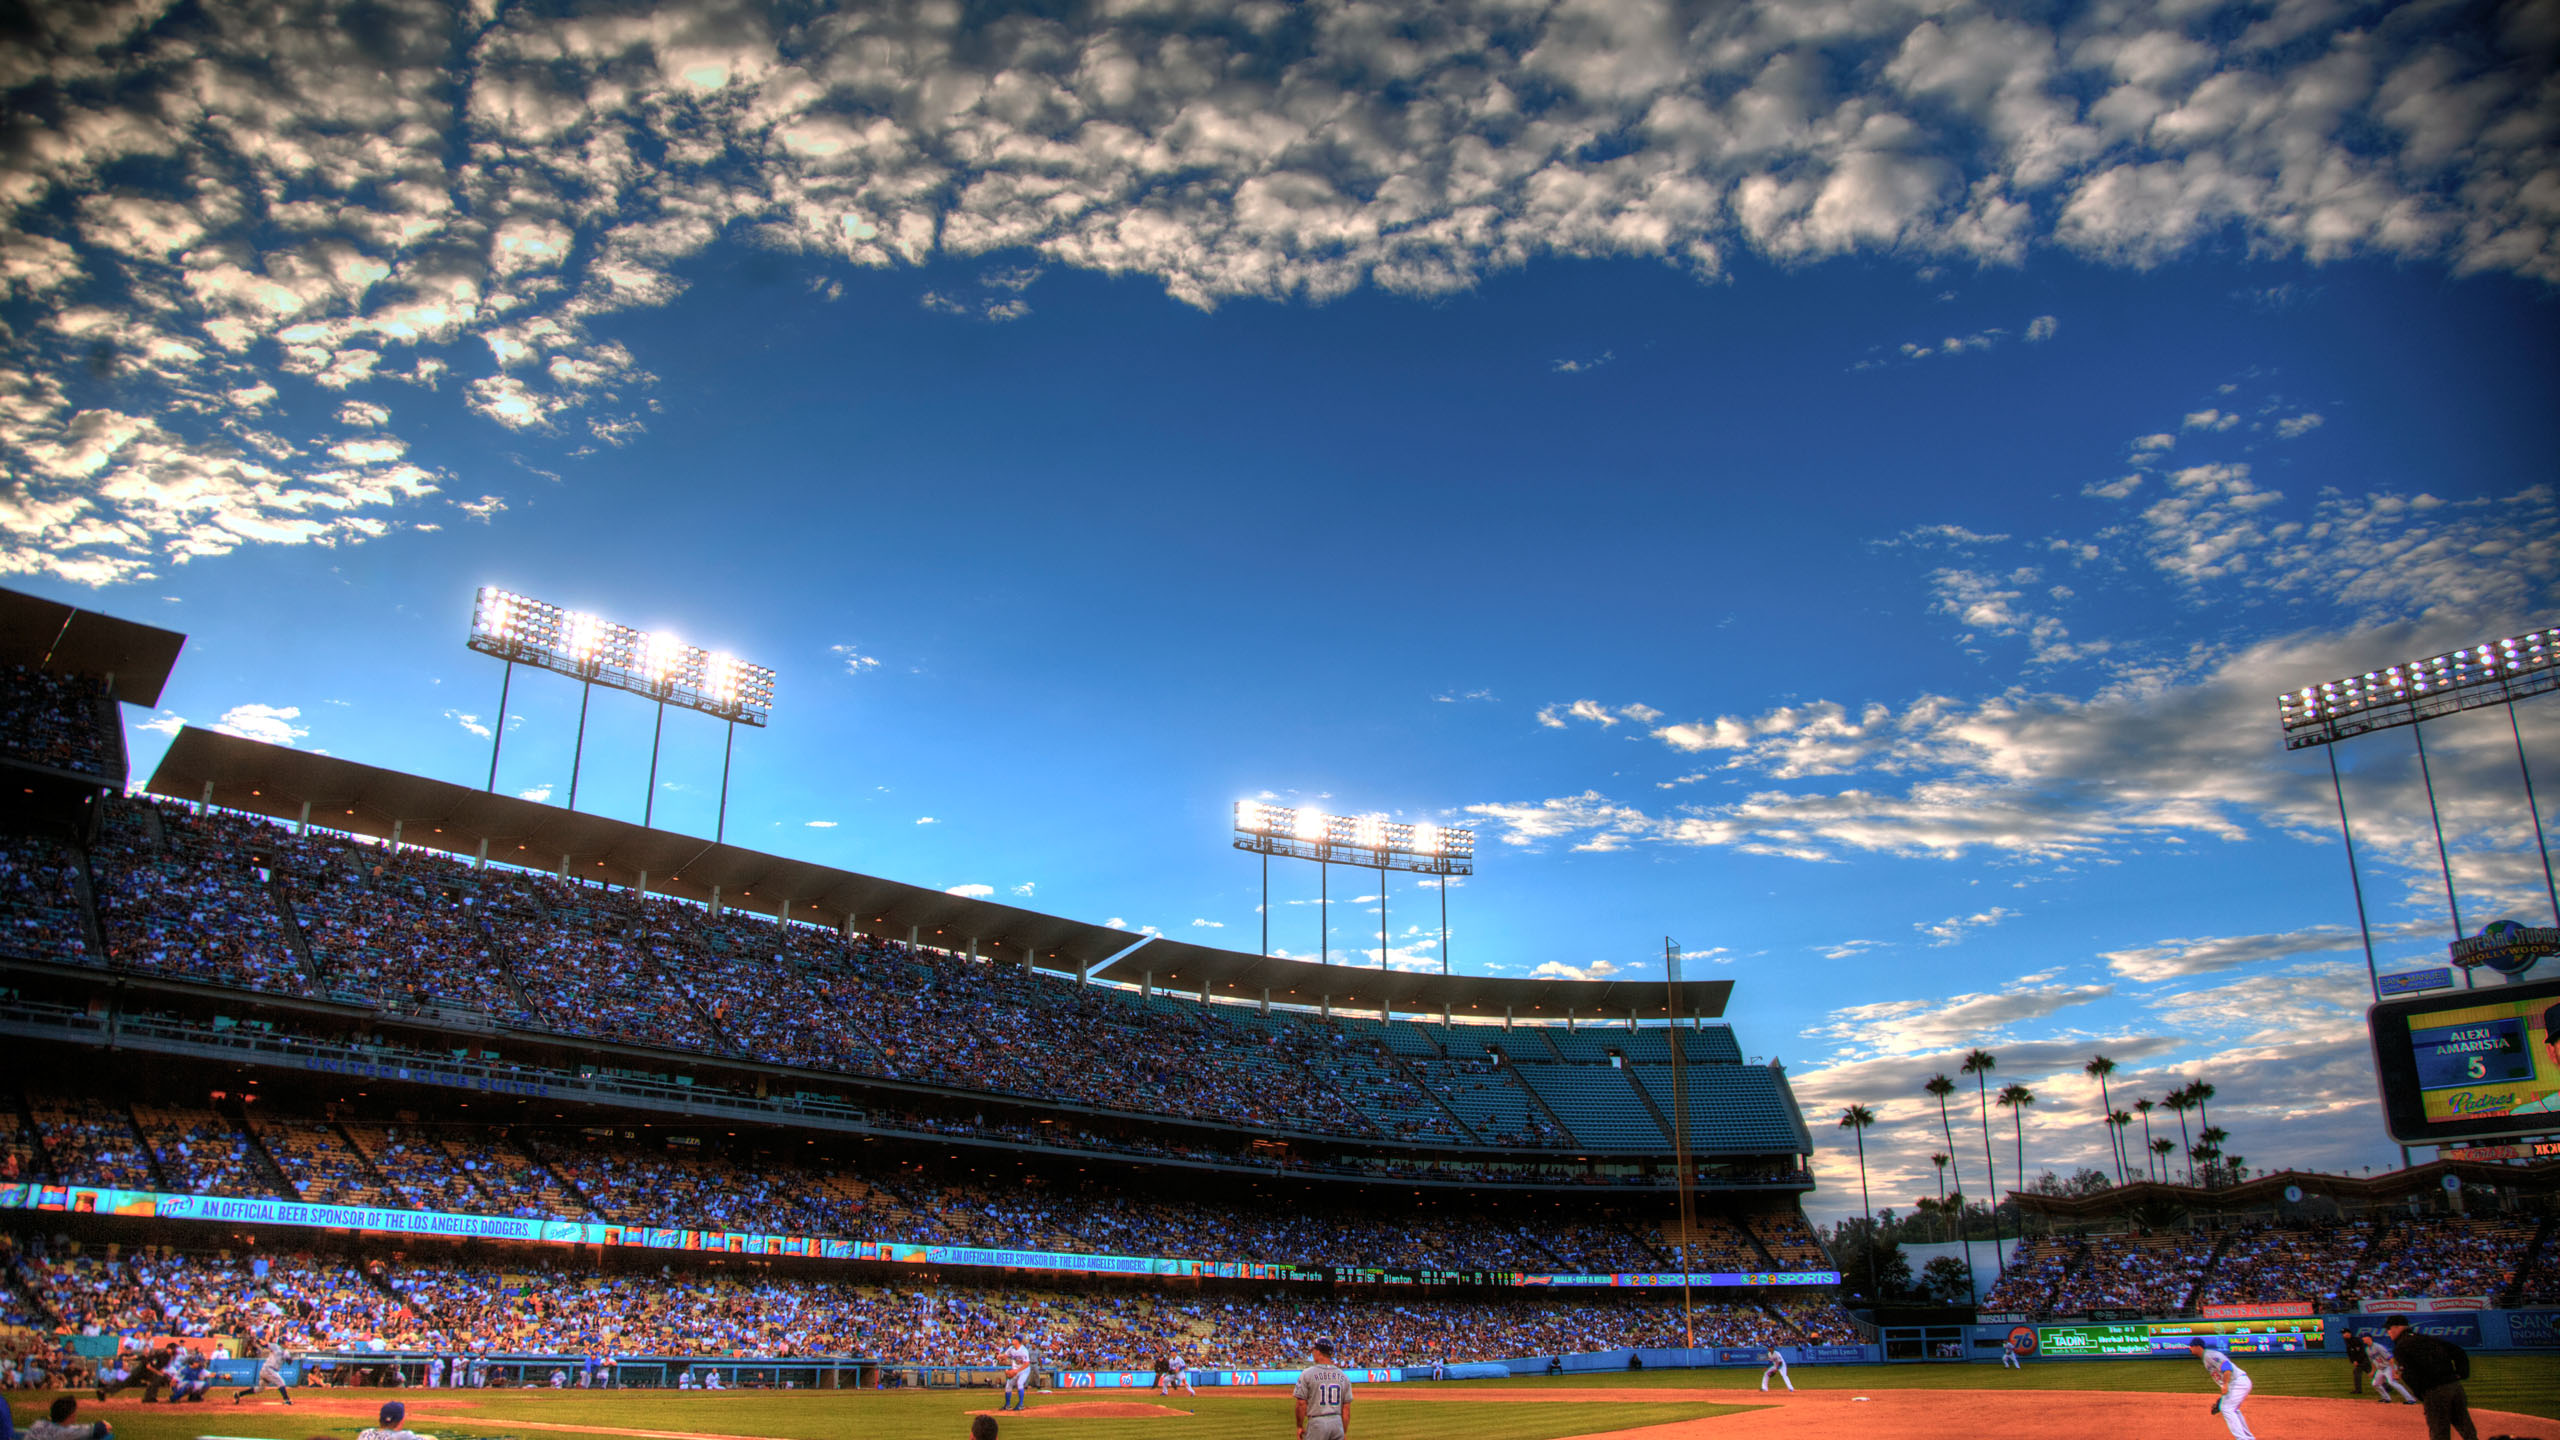 Los Angeles Dodgers wallpapers Los Angeles Dodgers background 2560x1440